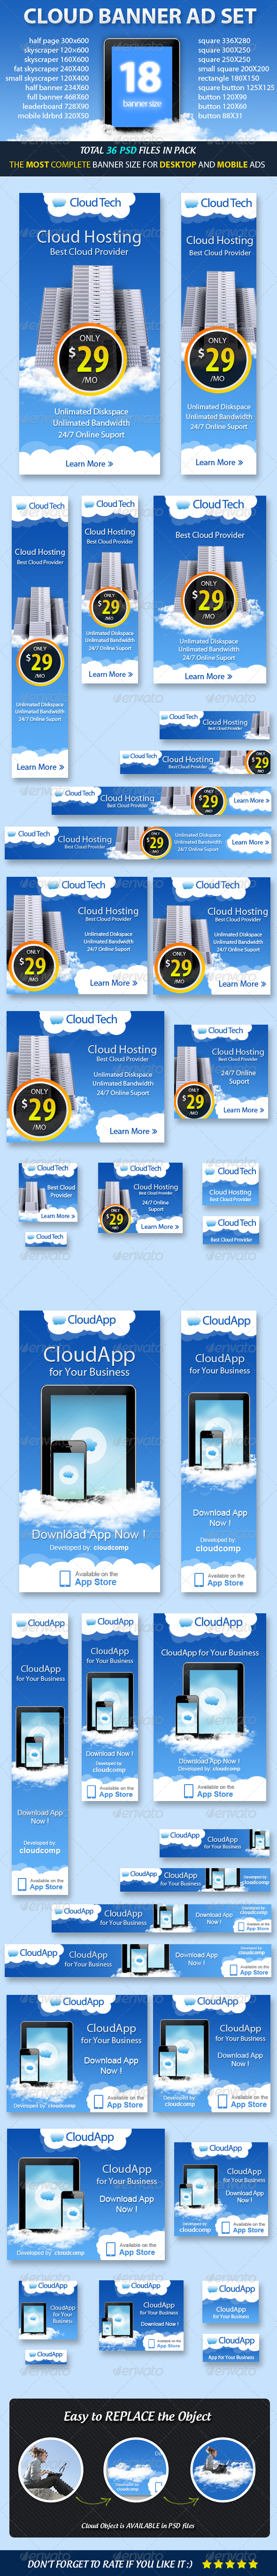 GraphicRiver Cloud Banner ad Set 5250447